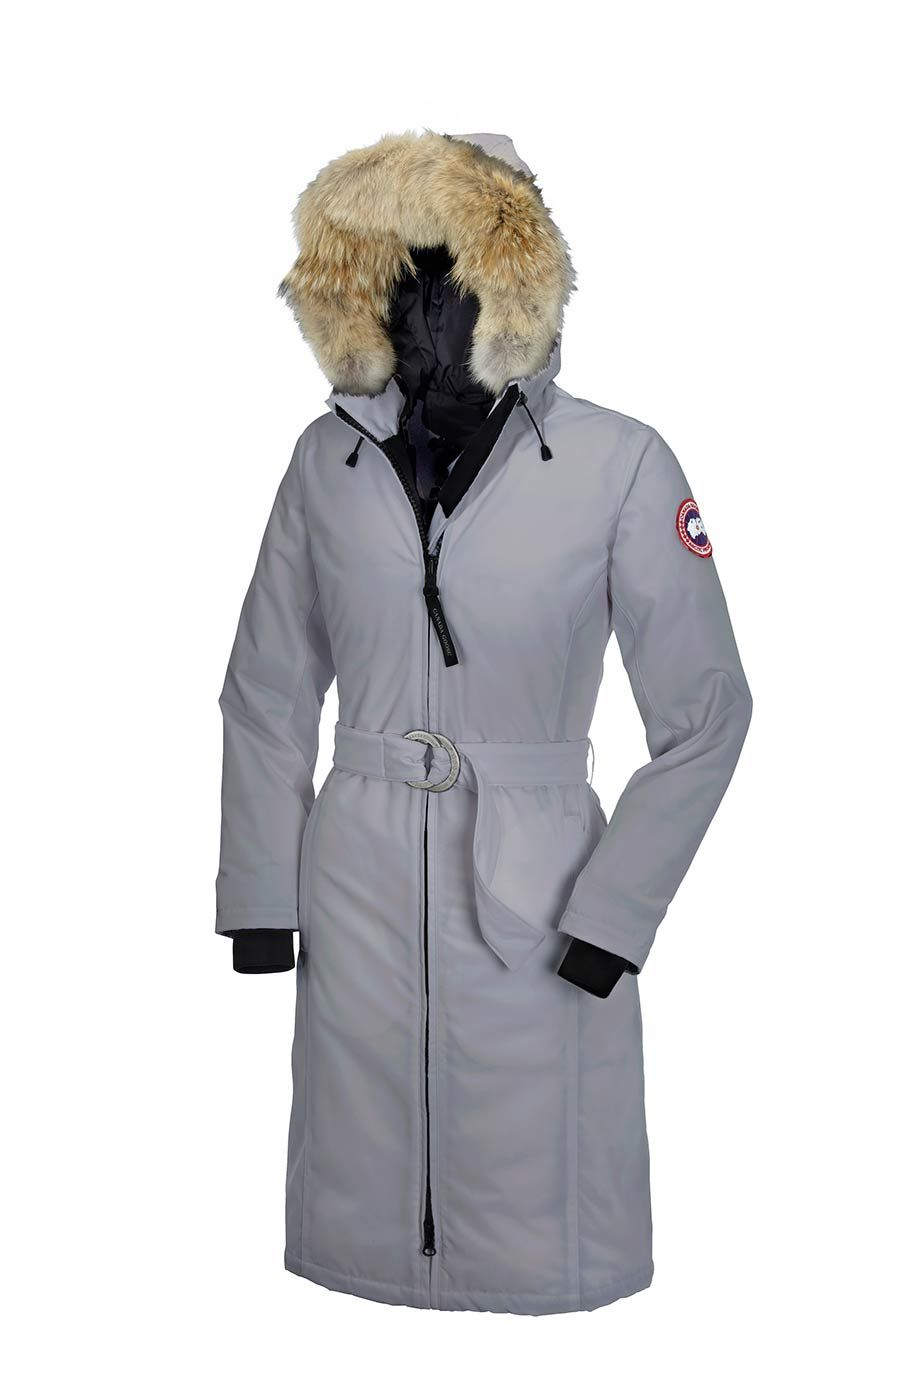 Silverbirch Whistler Parka from Canada Goose.